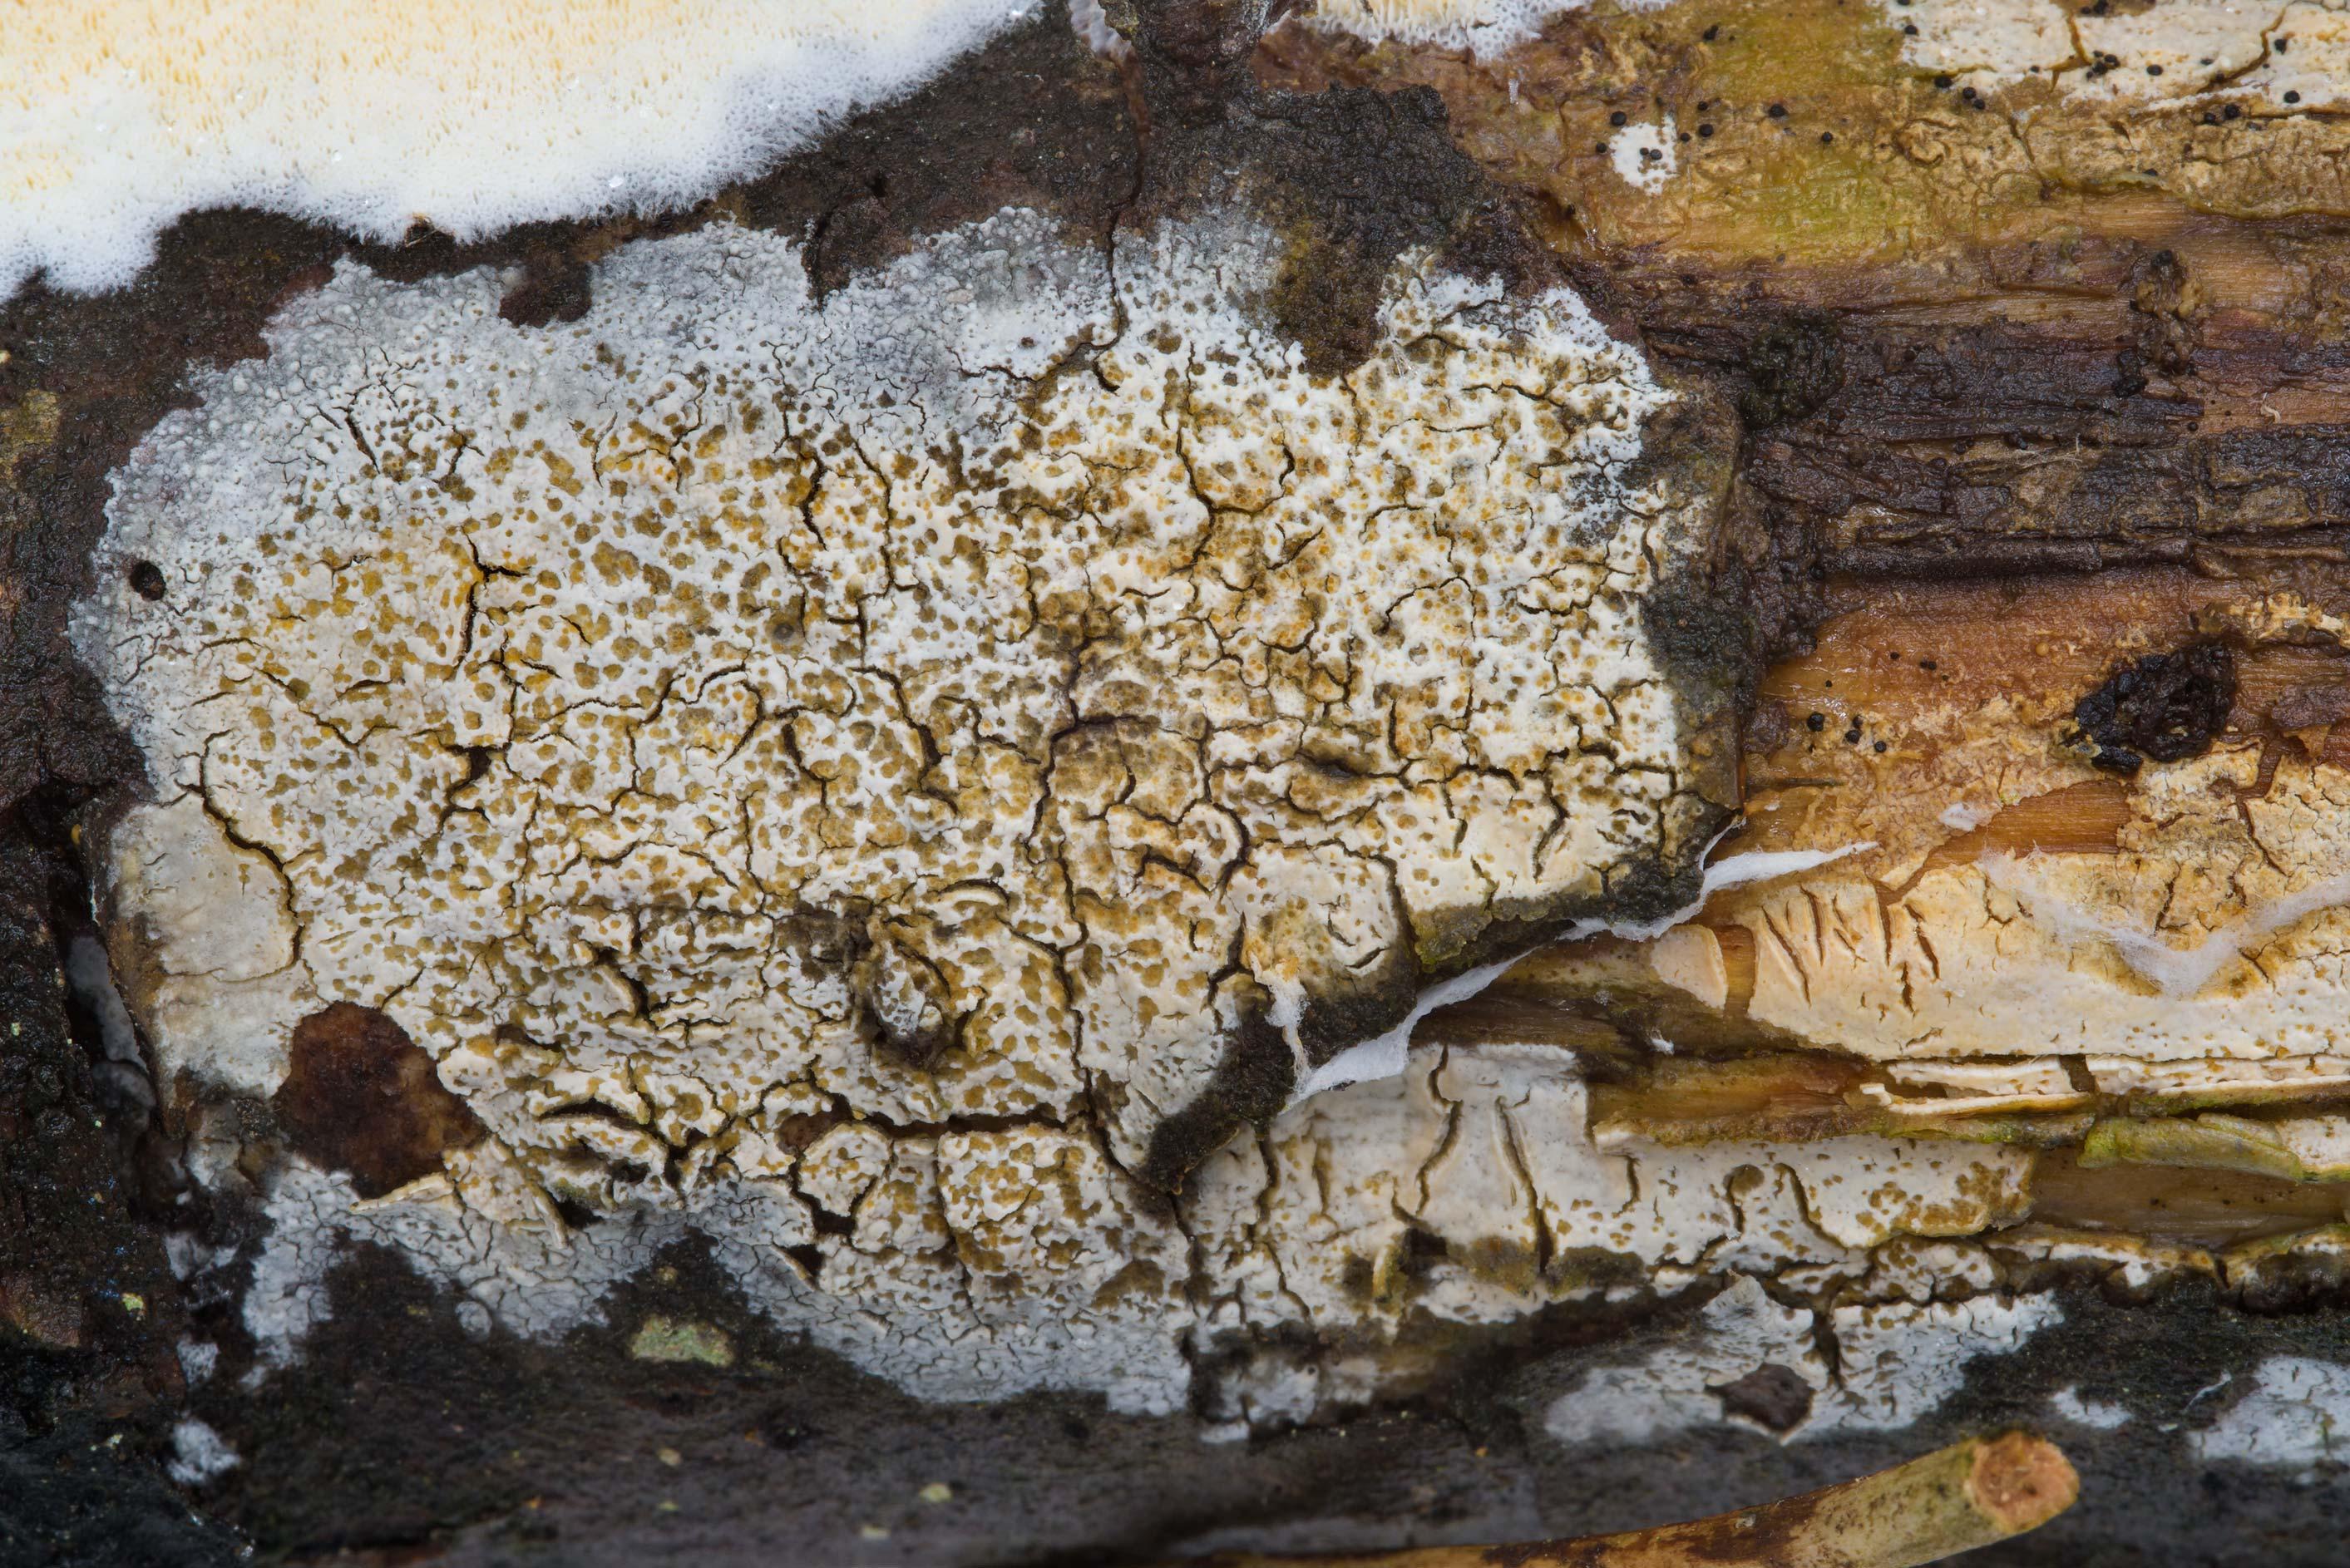 Some cracked crust of a fungus on lower side of a...Pesochny near St.Petersburg. Russia